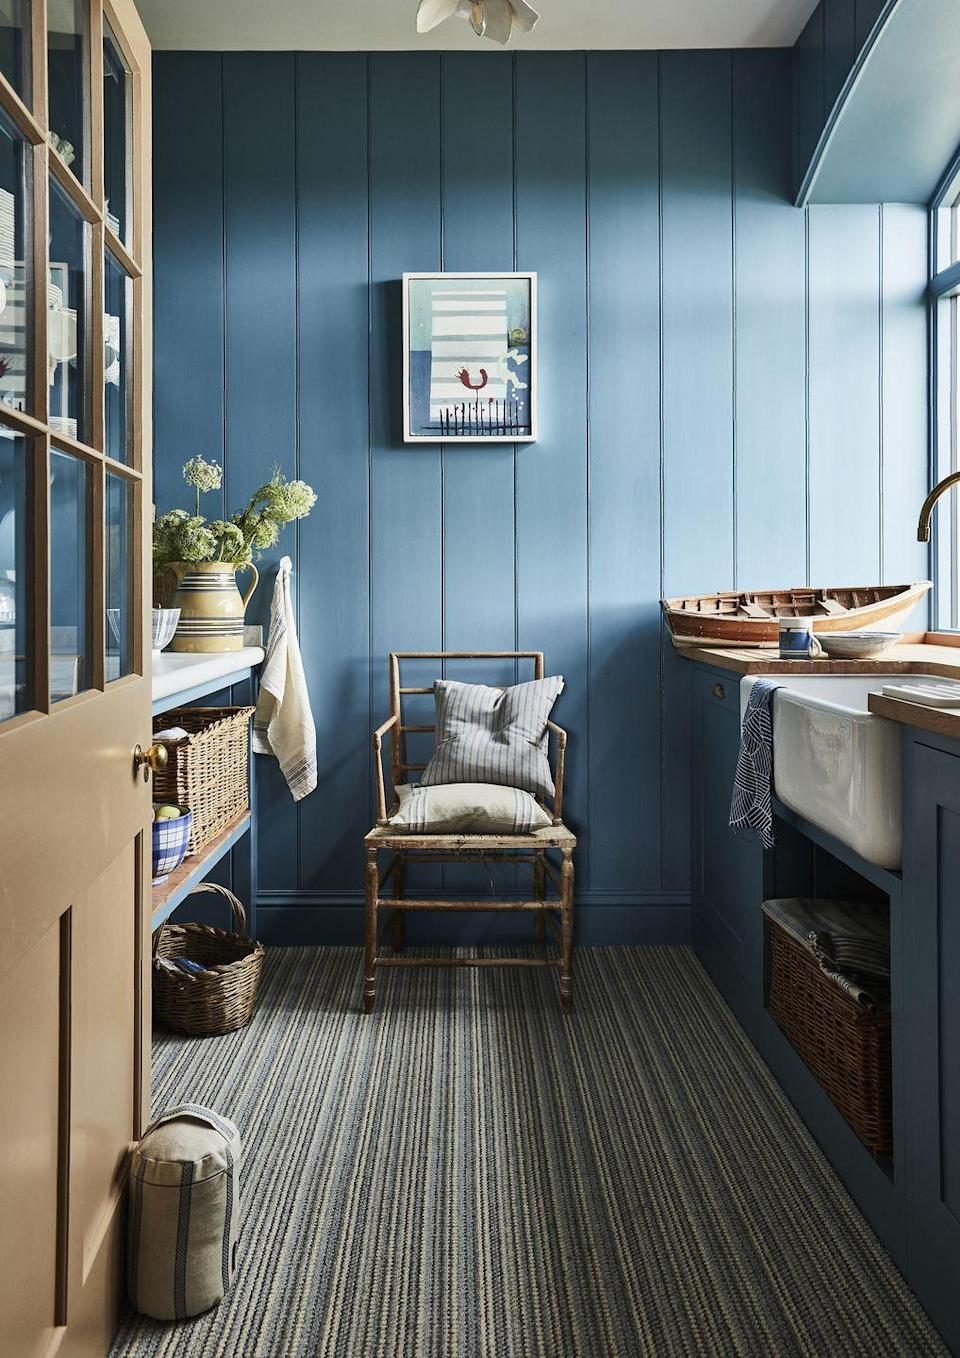 """<p>An abundance of print and pattern is a quintessential feature of country homes. Our Country Living Taylor Loop carpet at Carpetright uses natural forest greens and browns for a classic country colour palette, and is hardy enough for high traffic areas such as a hallway and even a kitchen. </p><p>Pictured: <a href=""""https://www.carpetright.co.uk/carpets/taylor-loop-pile-carpet/"""" rel=""""nofollow noopener"""" target=""""_blank"""" data-ylk=""""slk:Country Living Taylor Loop Pile Carpet at Carpetright"""" class=""""link rapid-noclick-resp"""">Country Living Taylor Loop Pile Carpet at Carpetright </a></p>"""